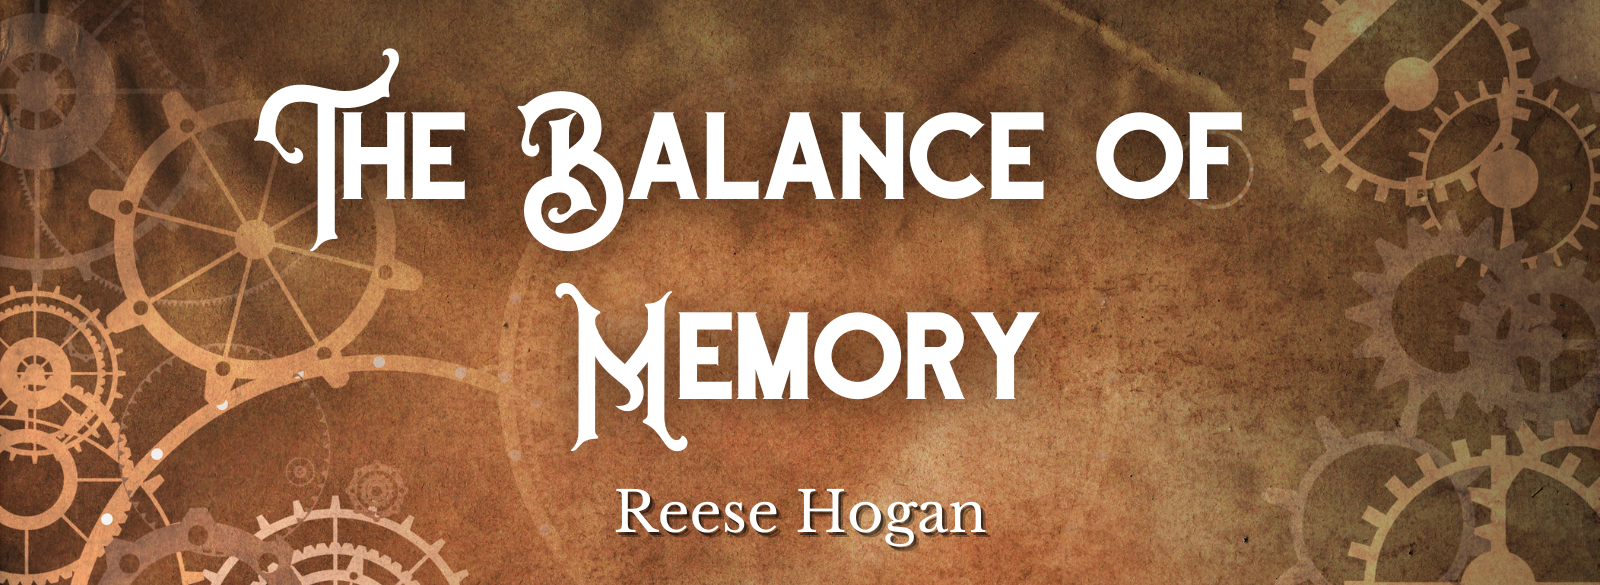 The Balance of Memory by Reese Hogan